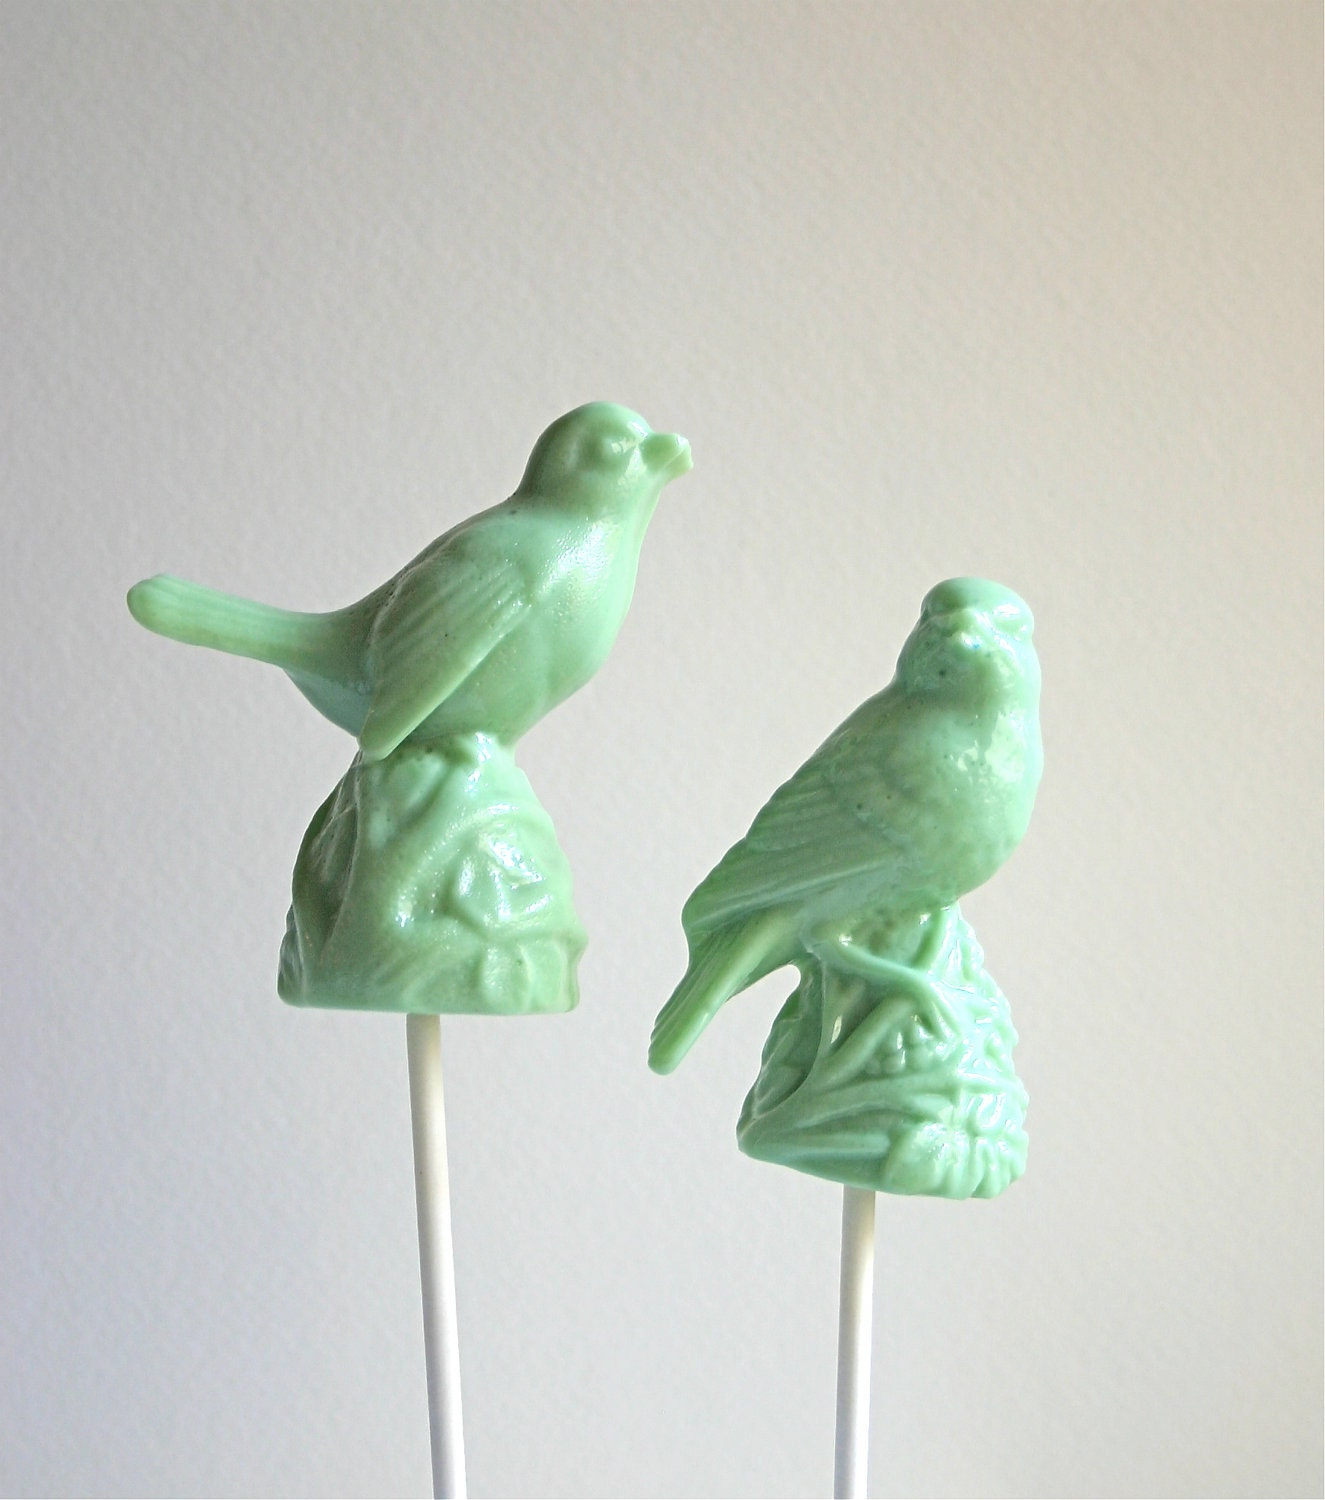 Hard Candy Lollipops 24 -Birds of a Feather-  a hand made candy by Andie's Specialty Sweets - andiespecialtysweets